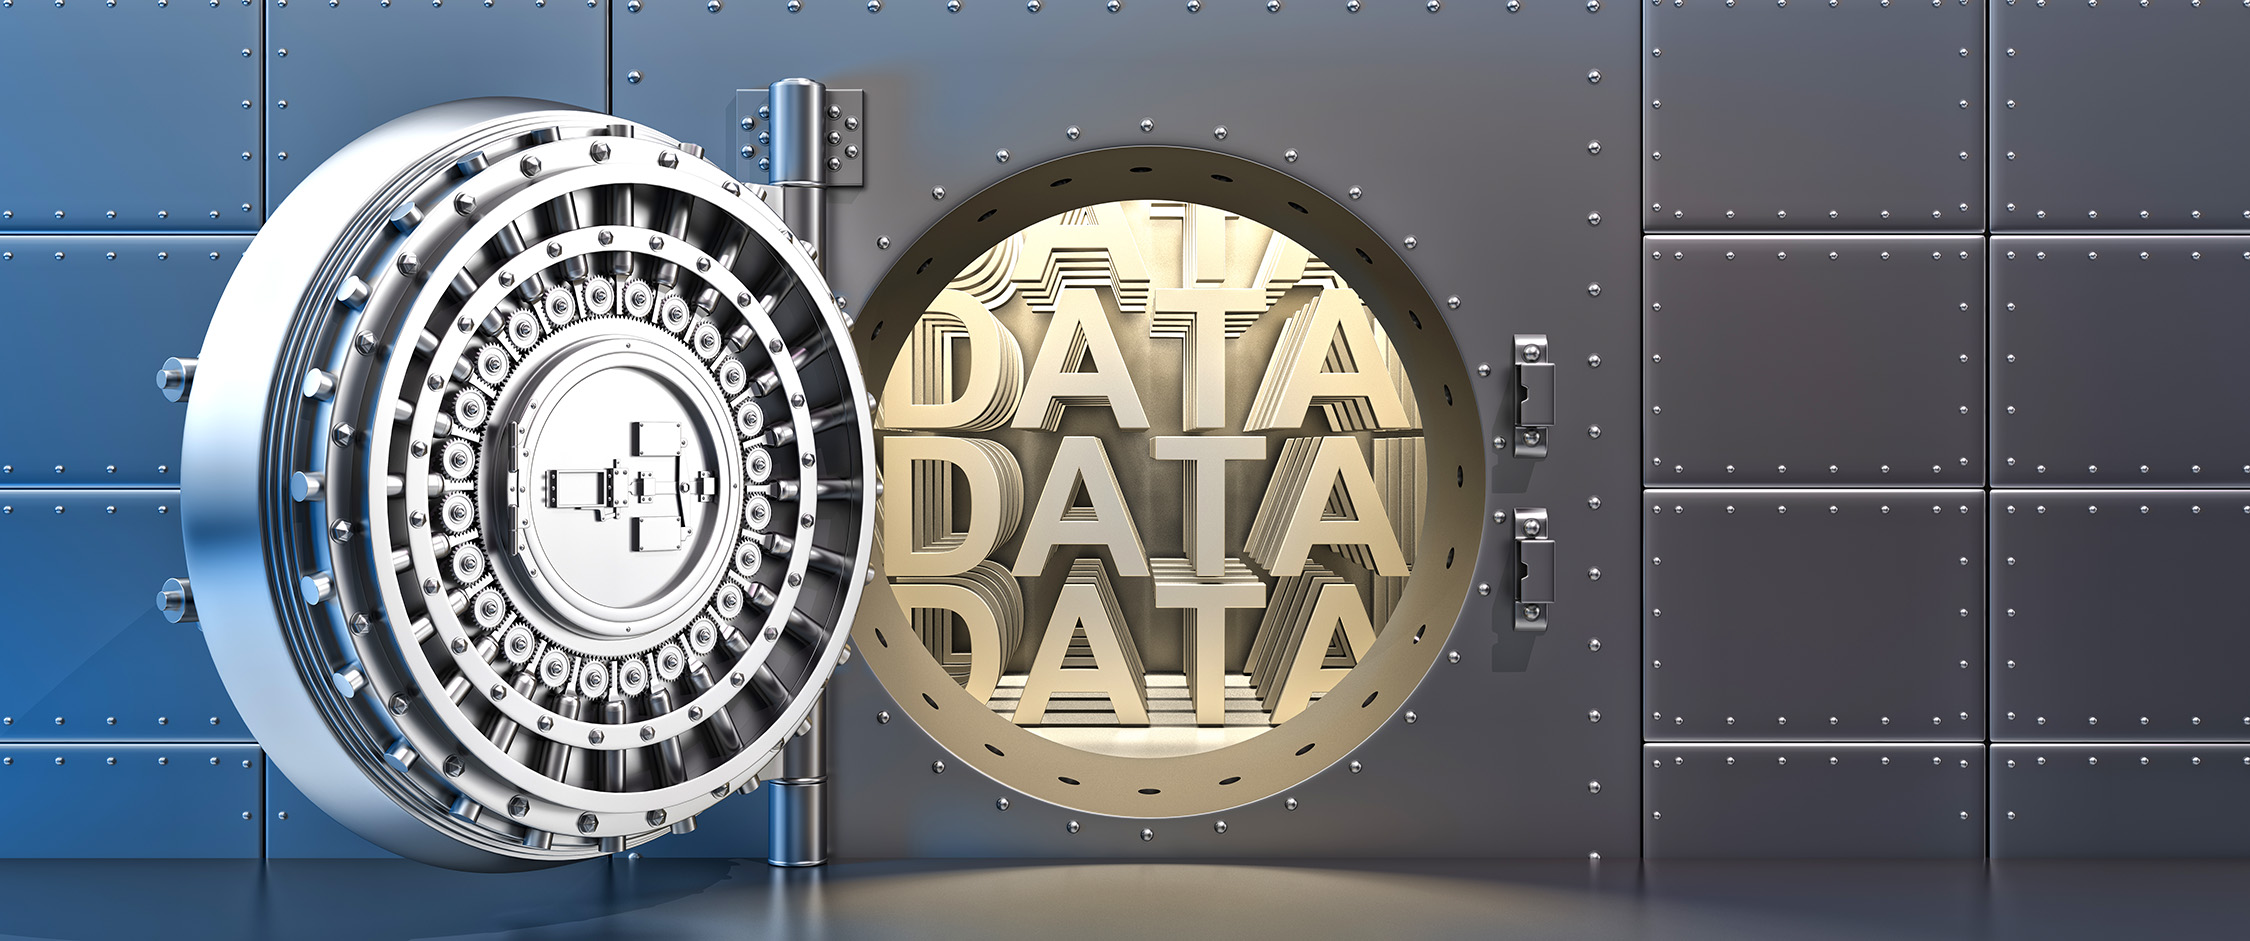 Data Vault: data hostage?